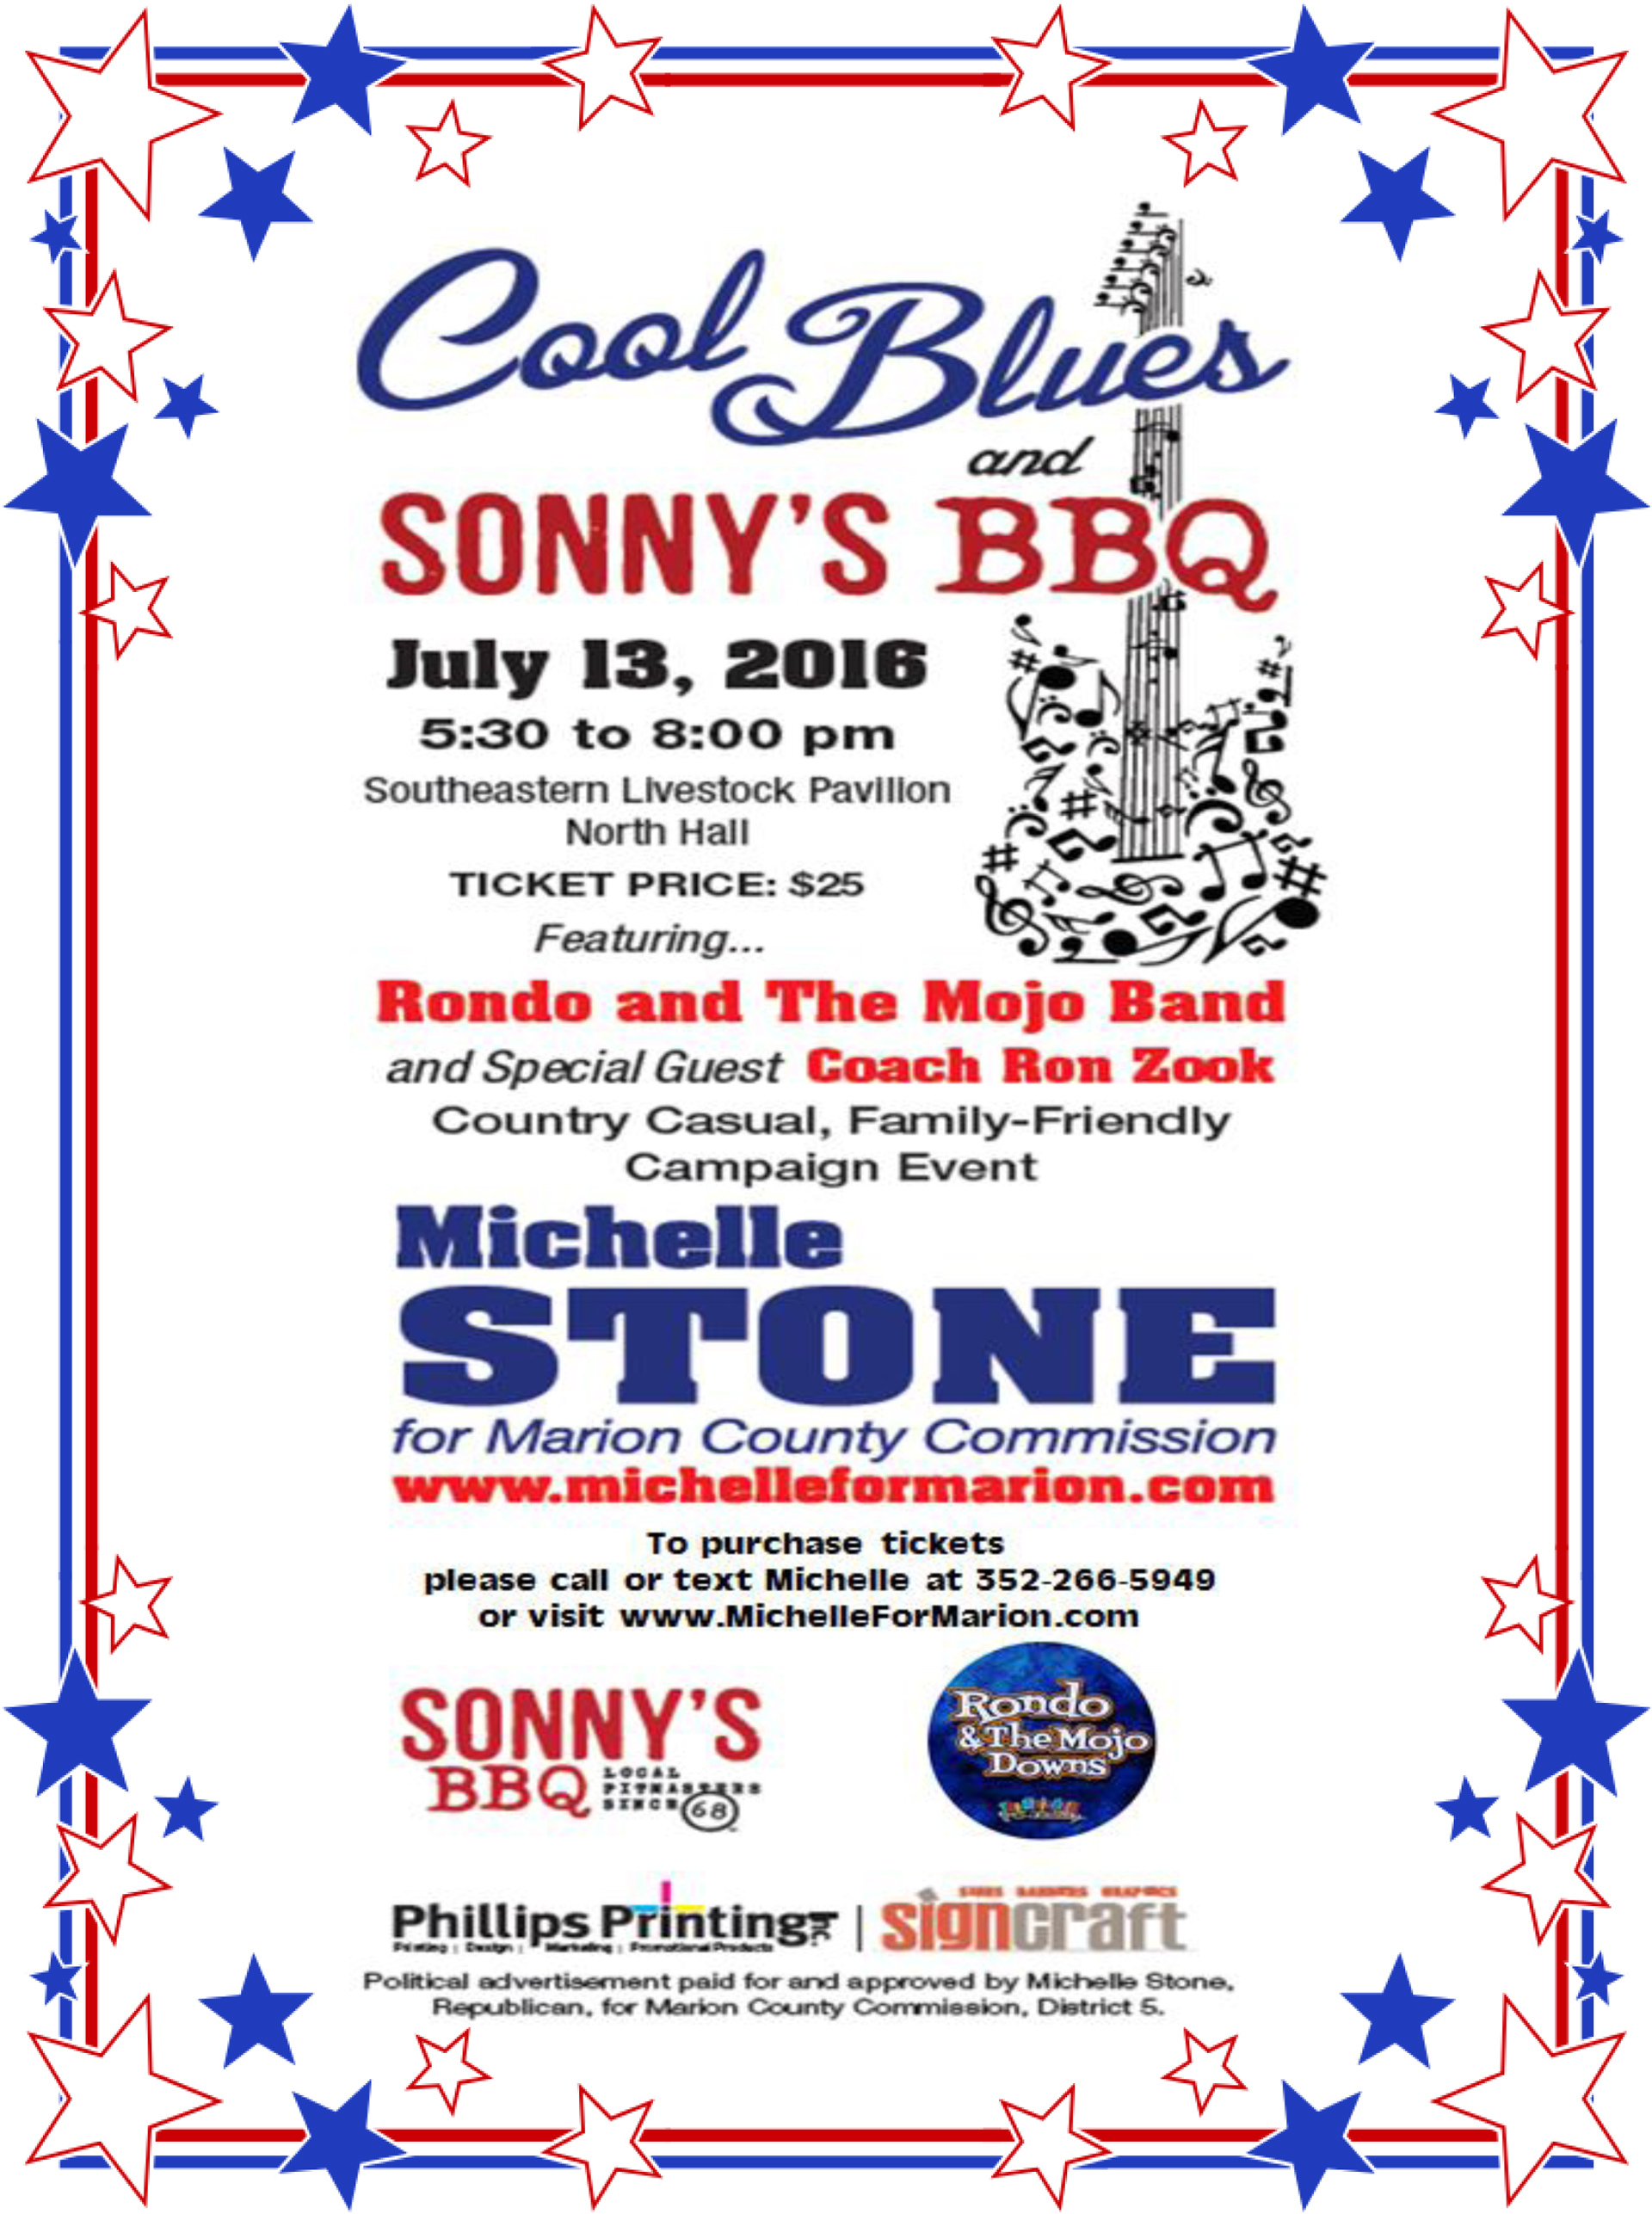 Cool Blues and Sonny's BBQ Event